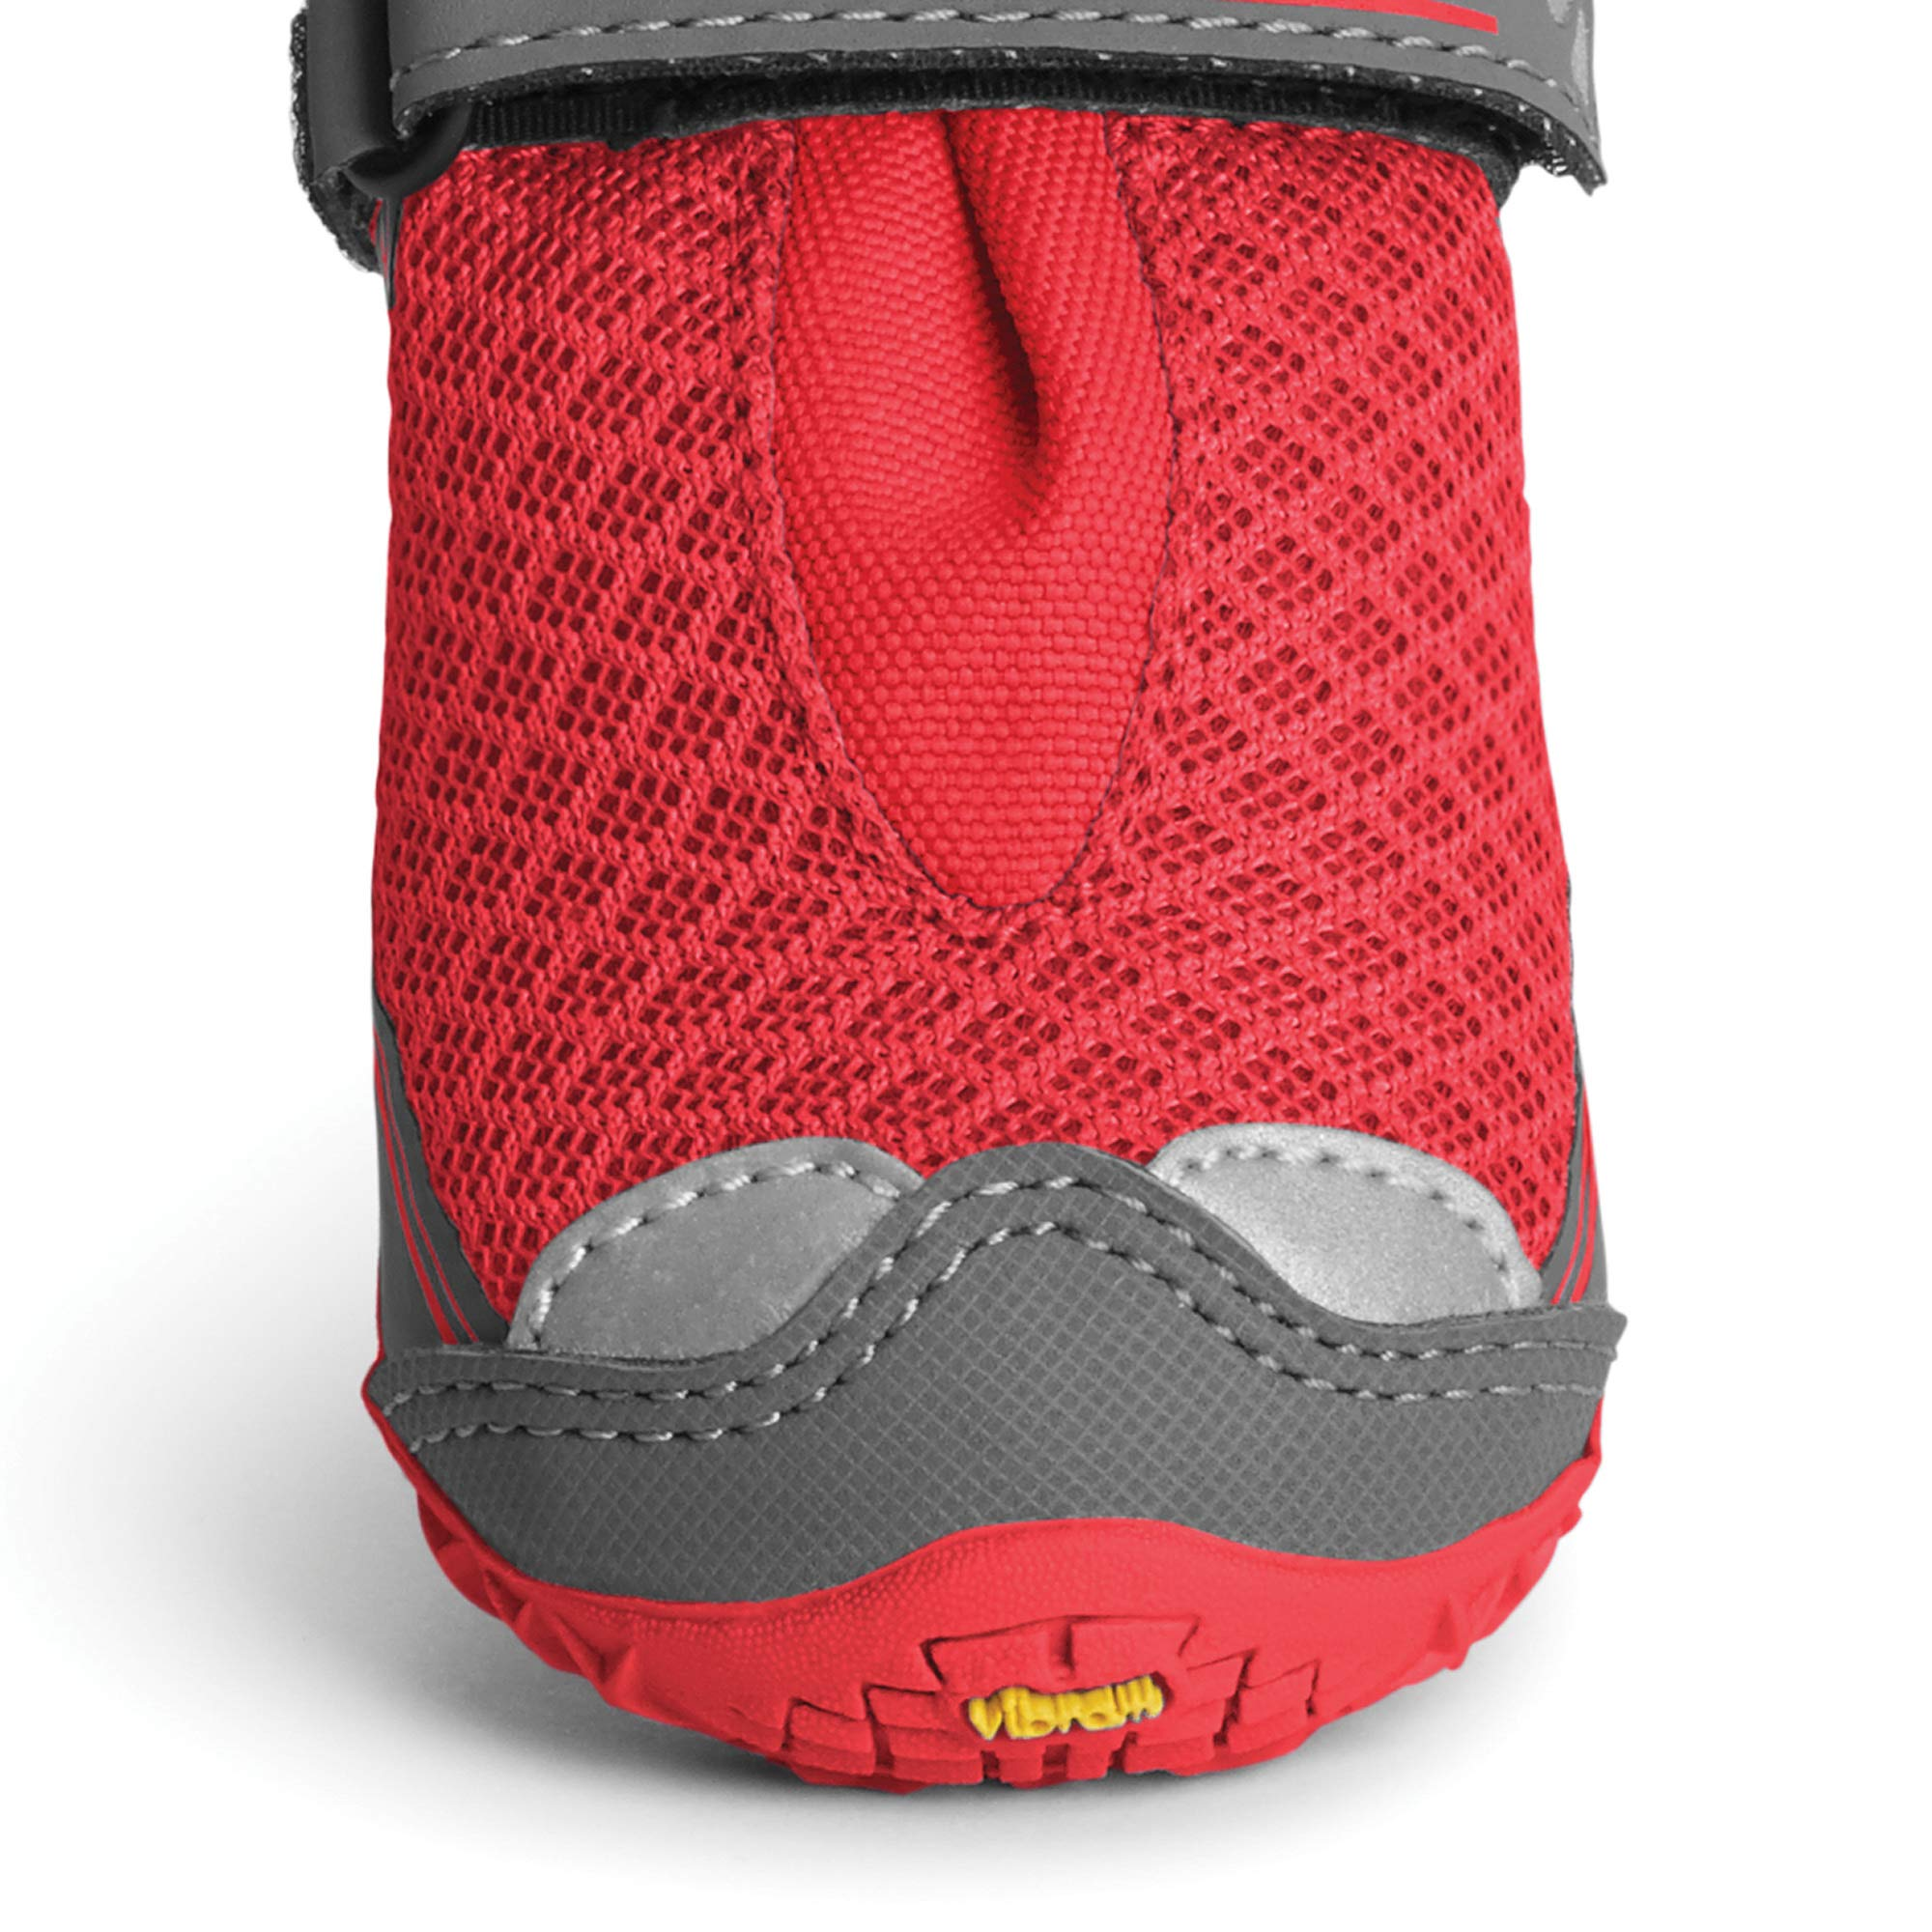 RUFFWEAR - Grip Trex, Red Currant, 2.25 in (4 Boots) by RUFFWEAR (Image #3)